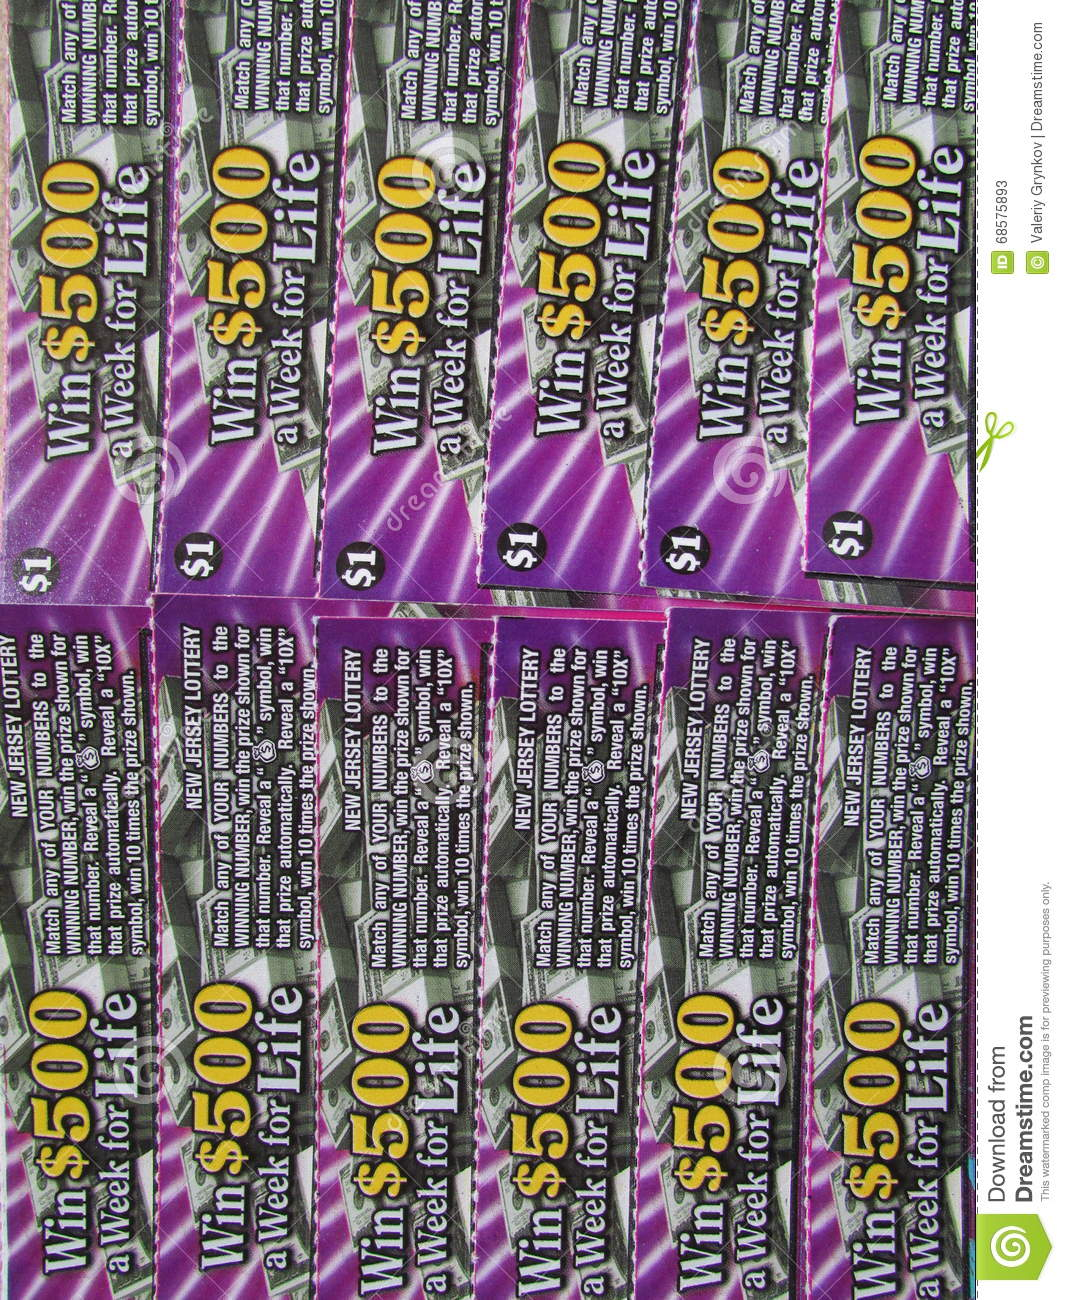 NJ Scratch Off Lottery Tickets, USA  Г  Editorial Stock Photo